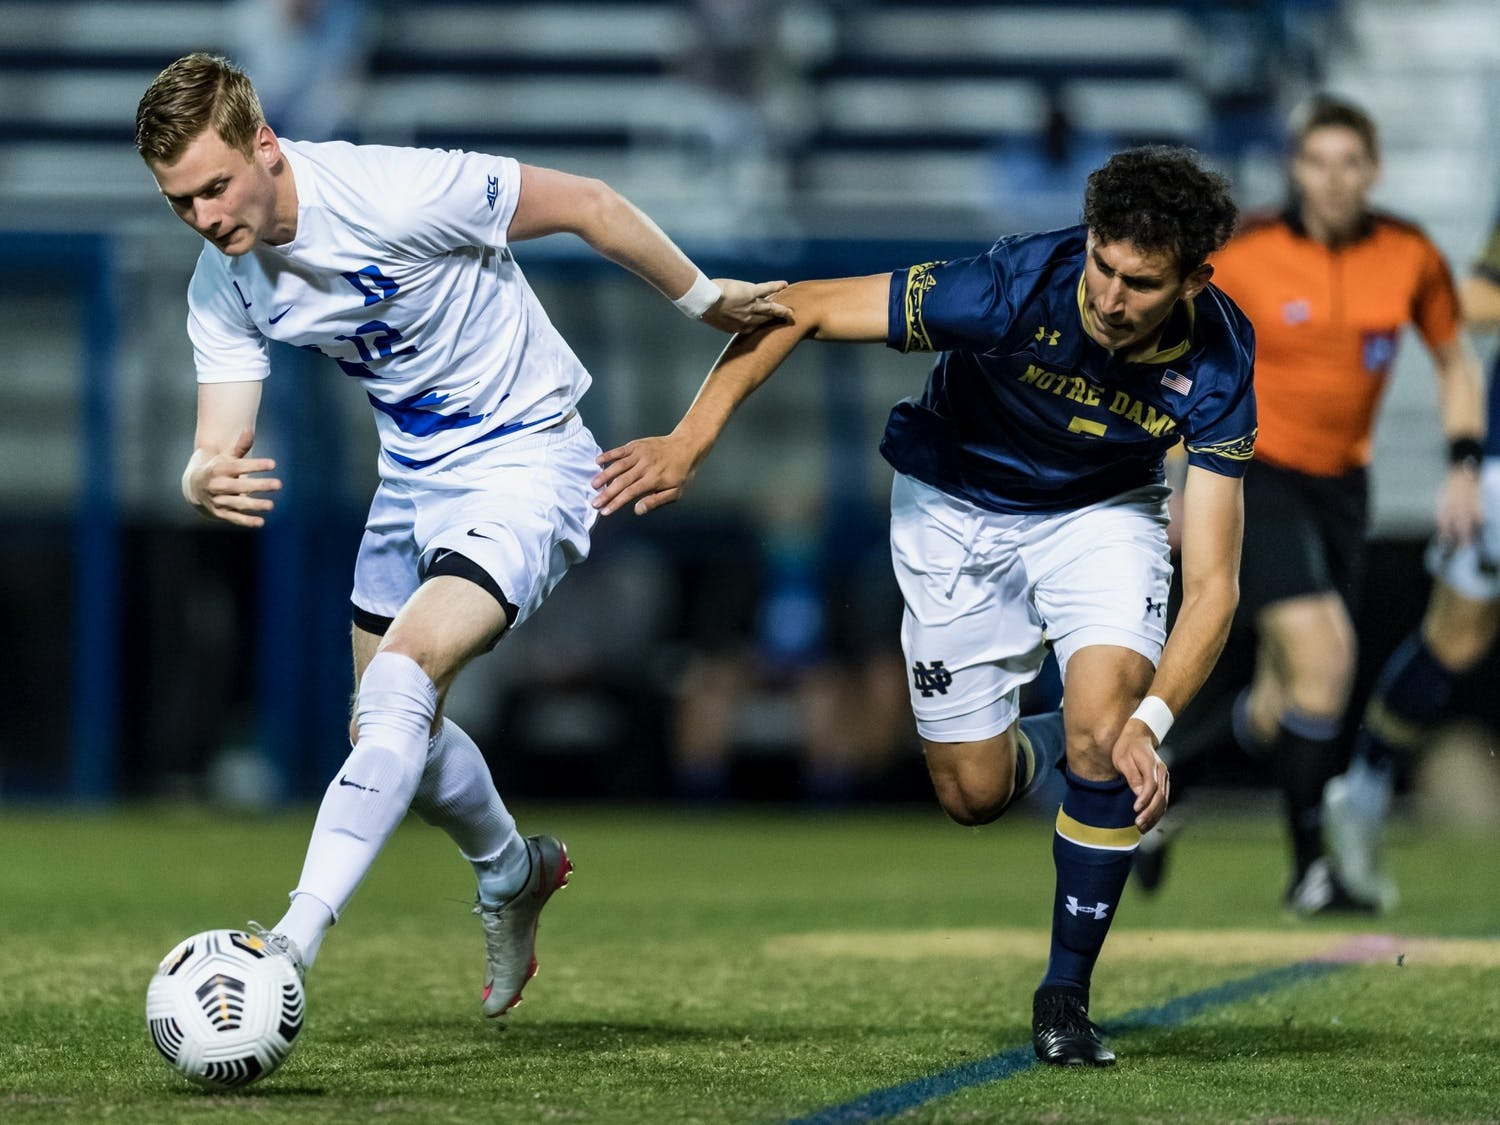 Sophomore forward Thorleifur Ulfarsson connected on two goals in the Blue Devils' 3-1 victory.